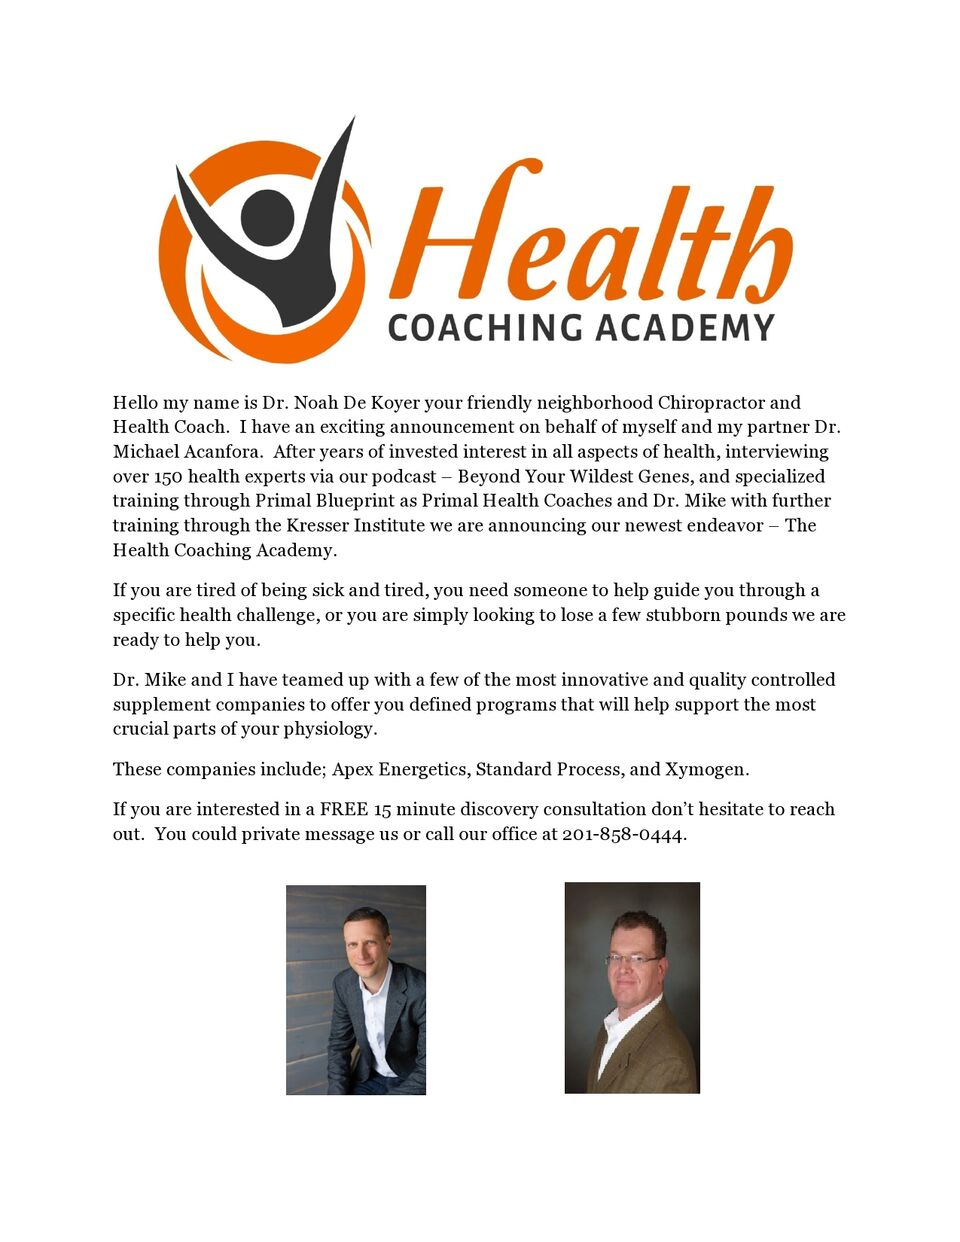 The Health Coaching Academy With Bayonne Best Chiropractor